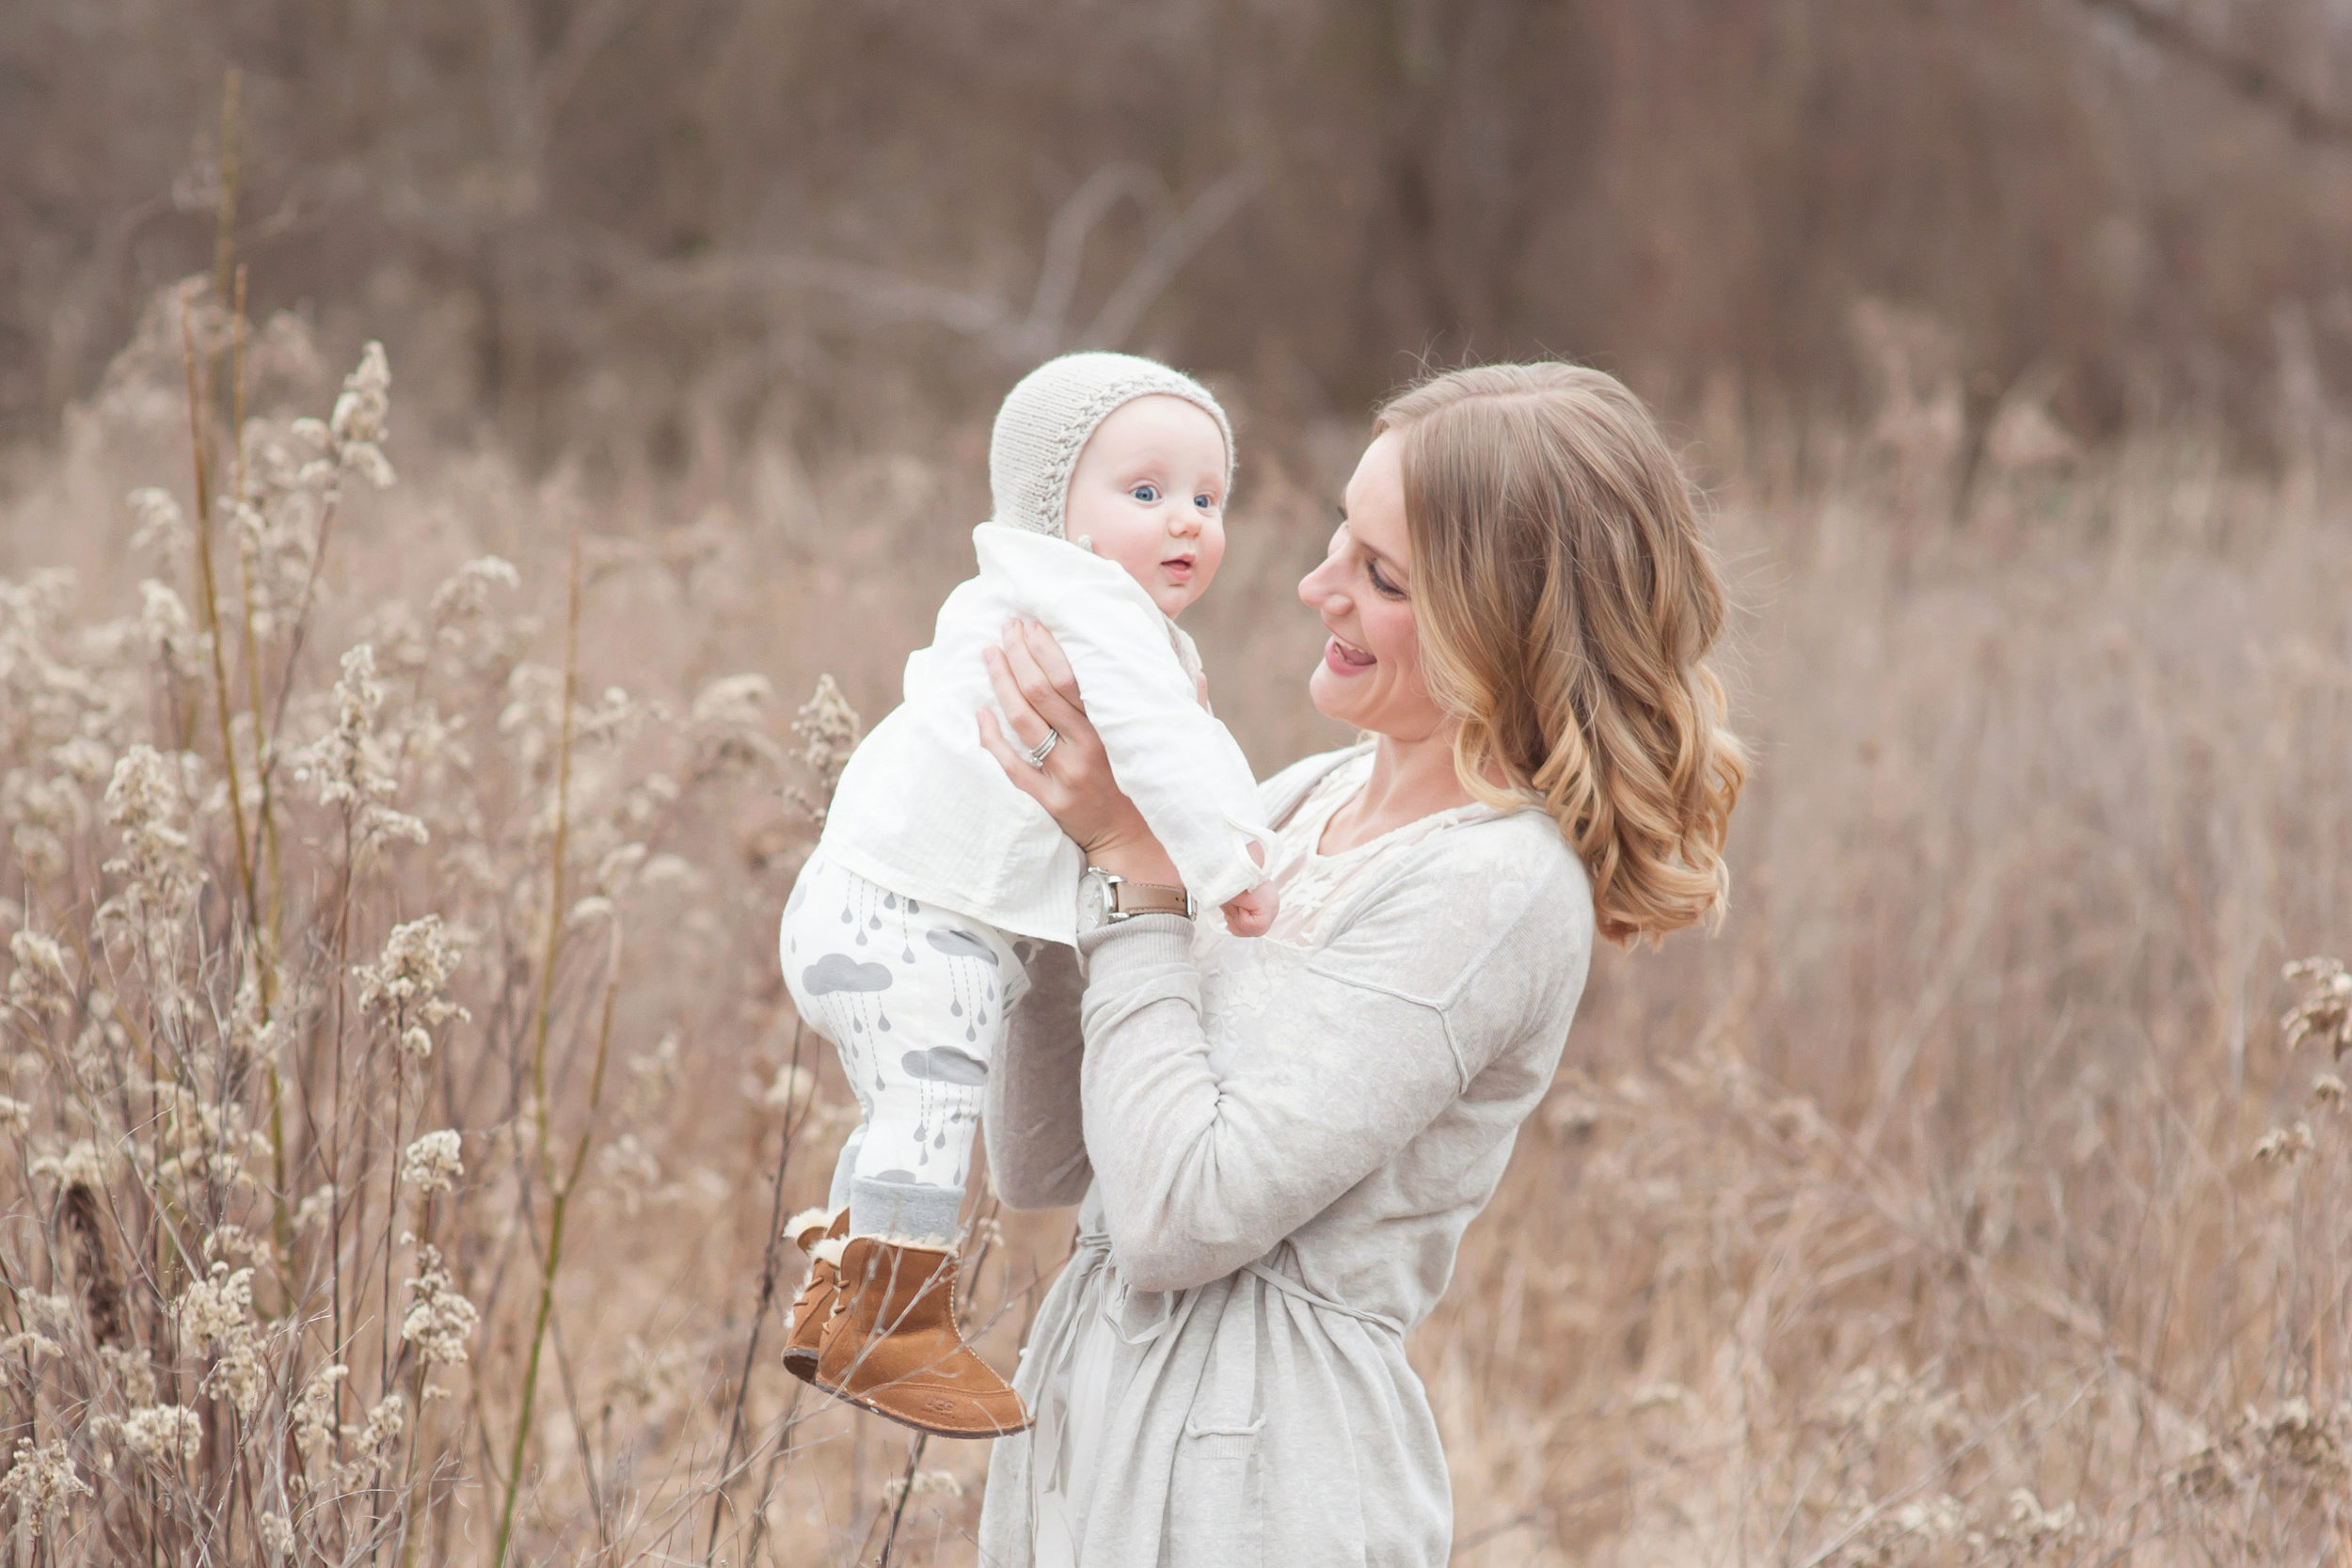 Louisville KY Family Newborn and Maternity Photographer | Julie Brock Photography | outdoor family photo session with mom and baby